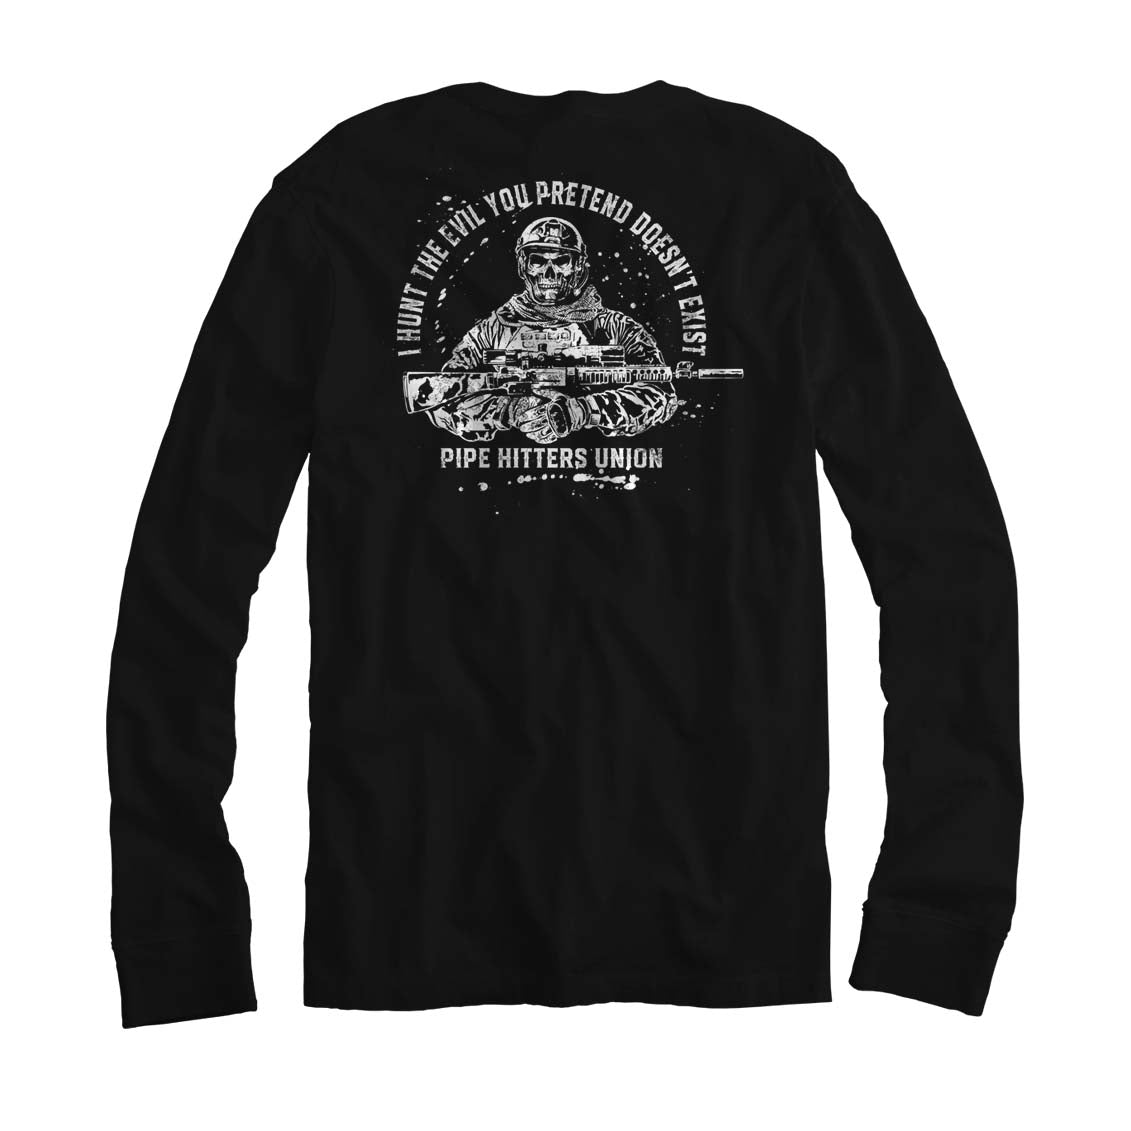 Hunt Evil - Long Sleeve - Black/White - T-Shirts - Pipe Hitters Union